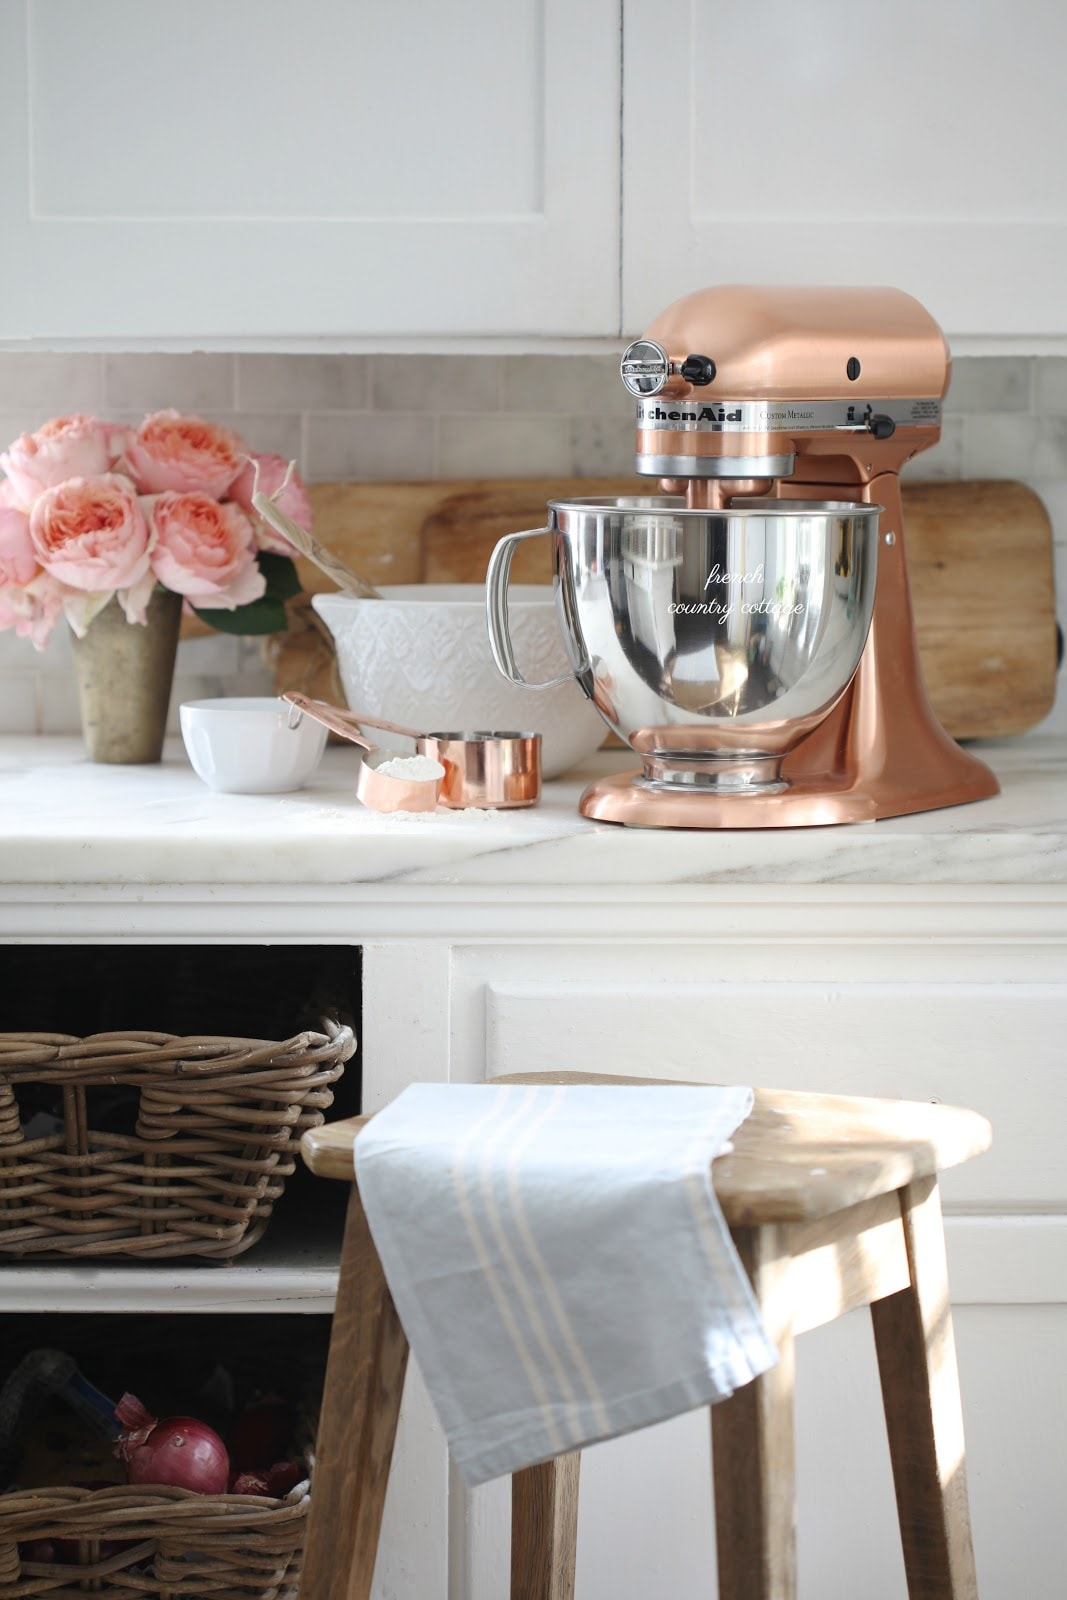 Copper mixer on marble counter